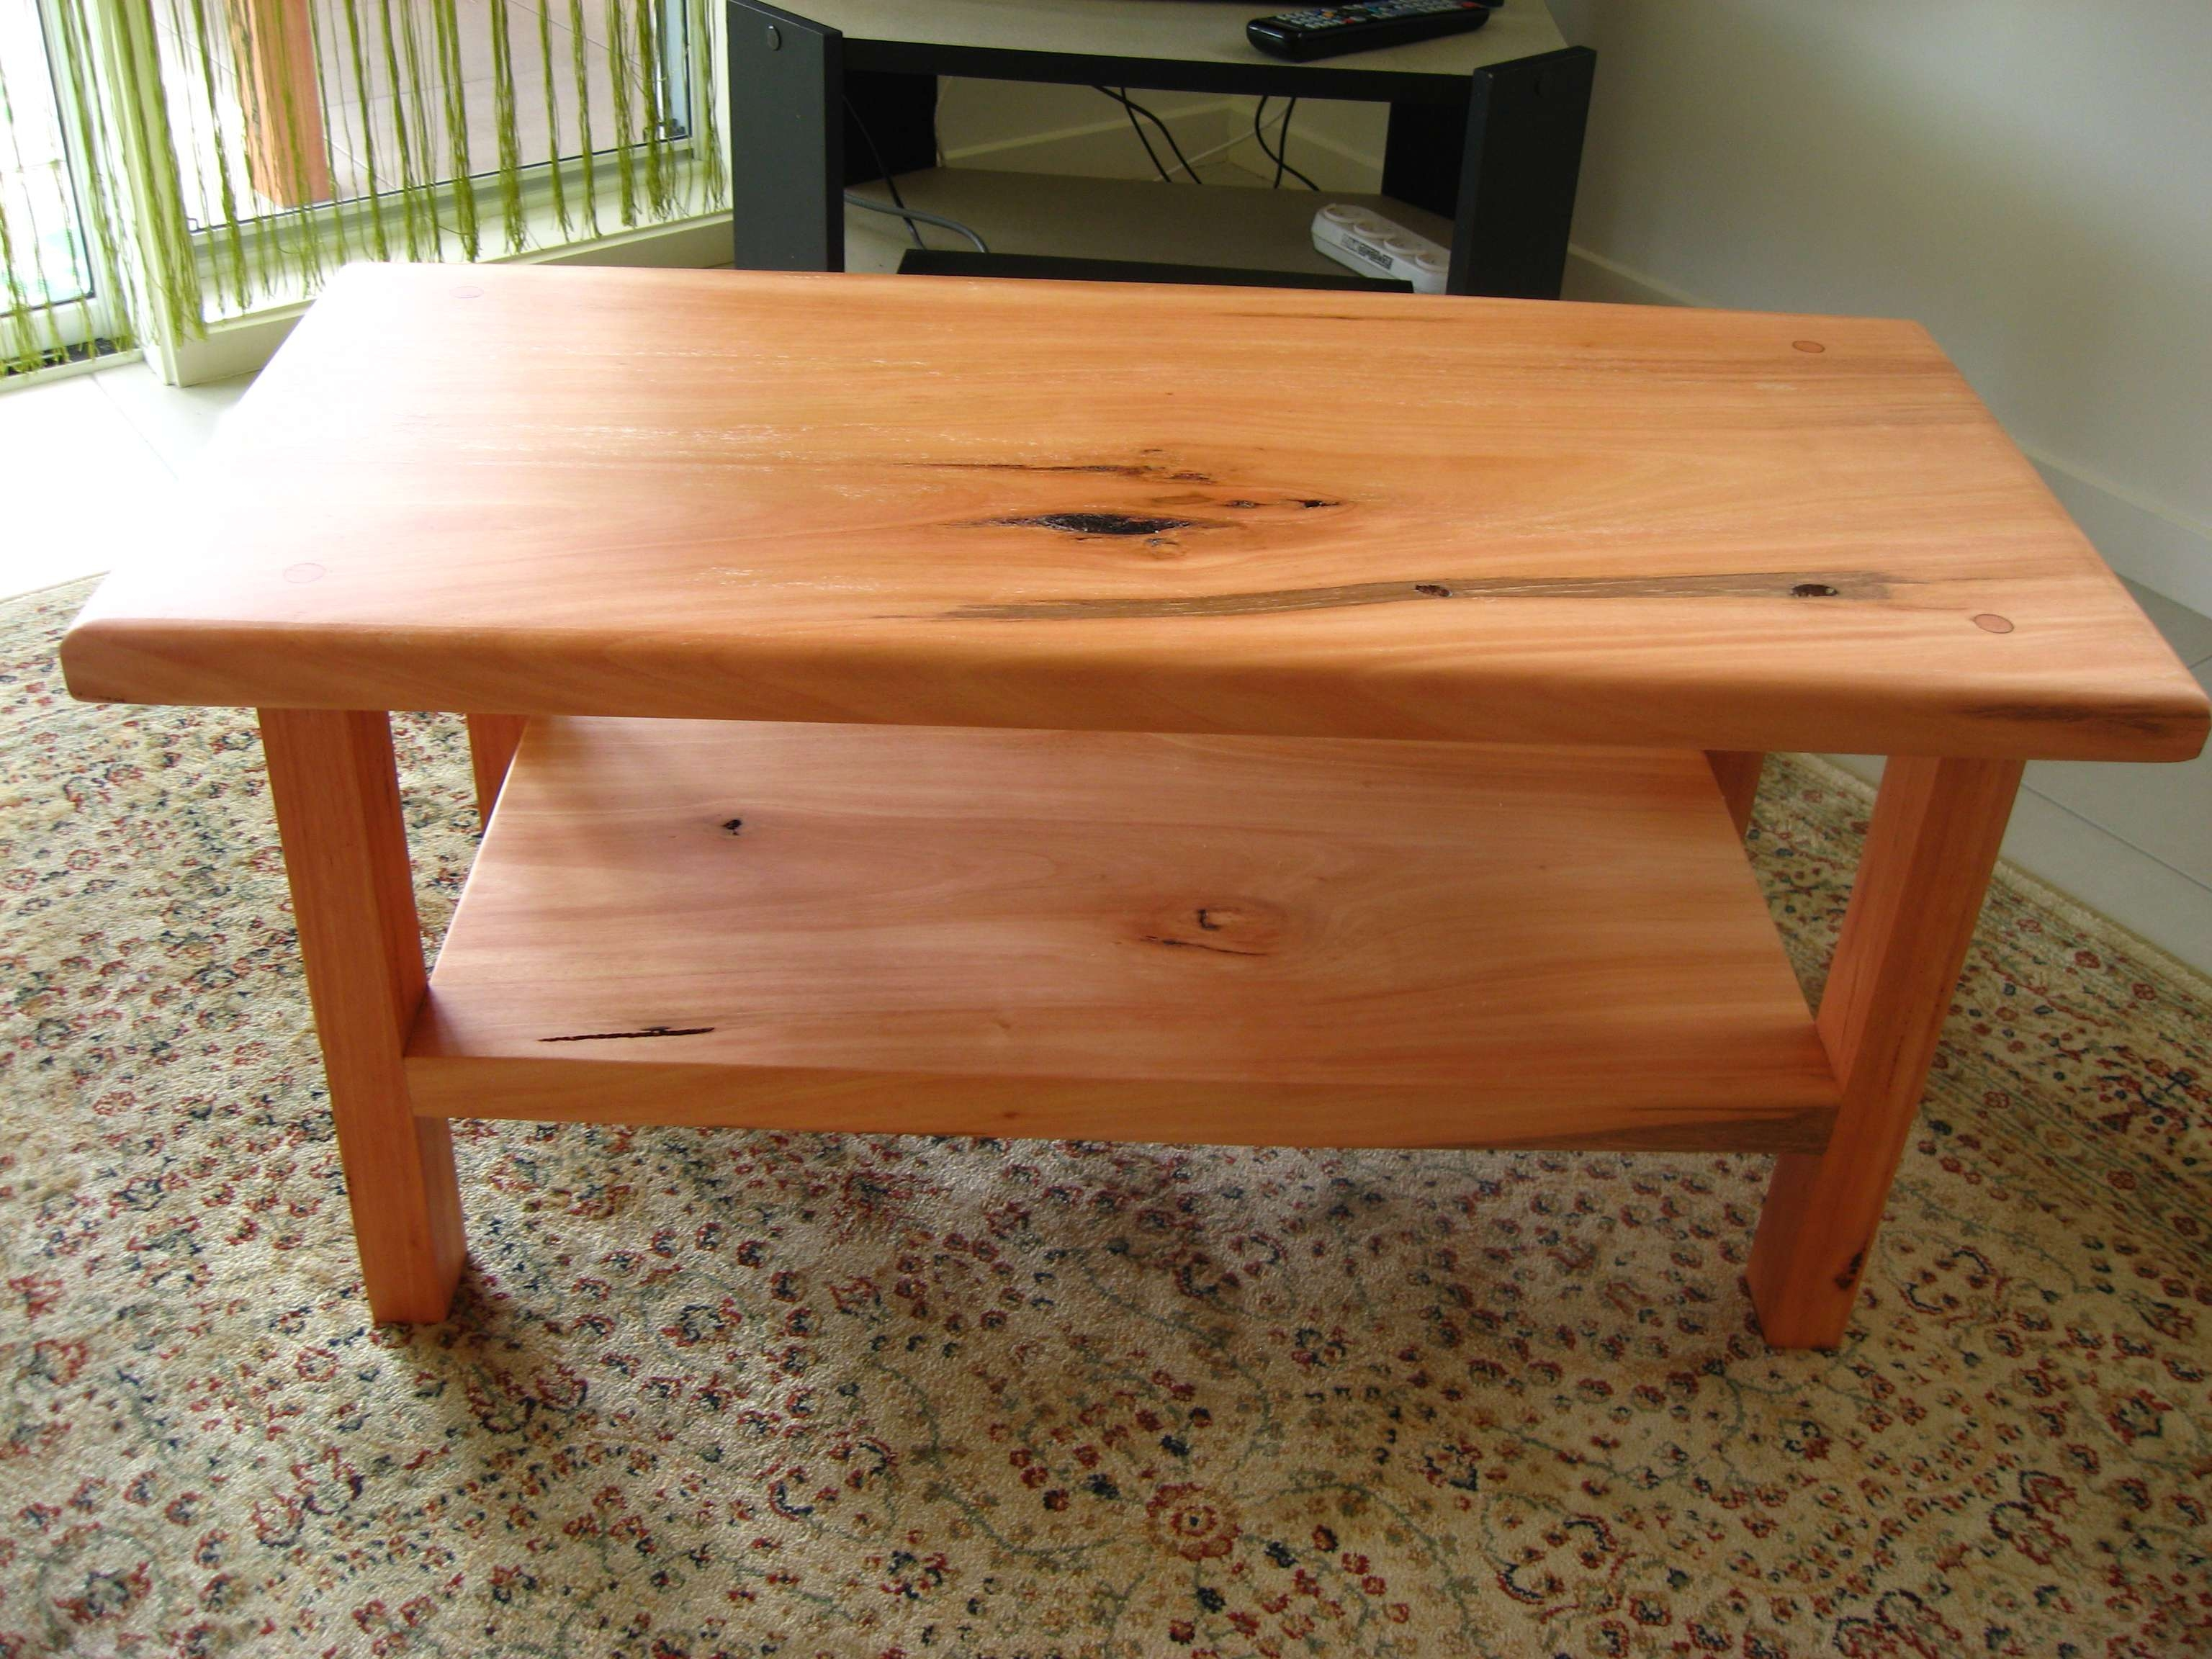 Coffee Tables Ideas: Wood Coffee Table Designs Coffee Table Design Throughout Recent Handmade Wooden Coffee Tables (View 4 of 20)